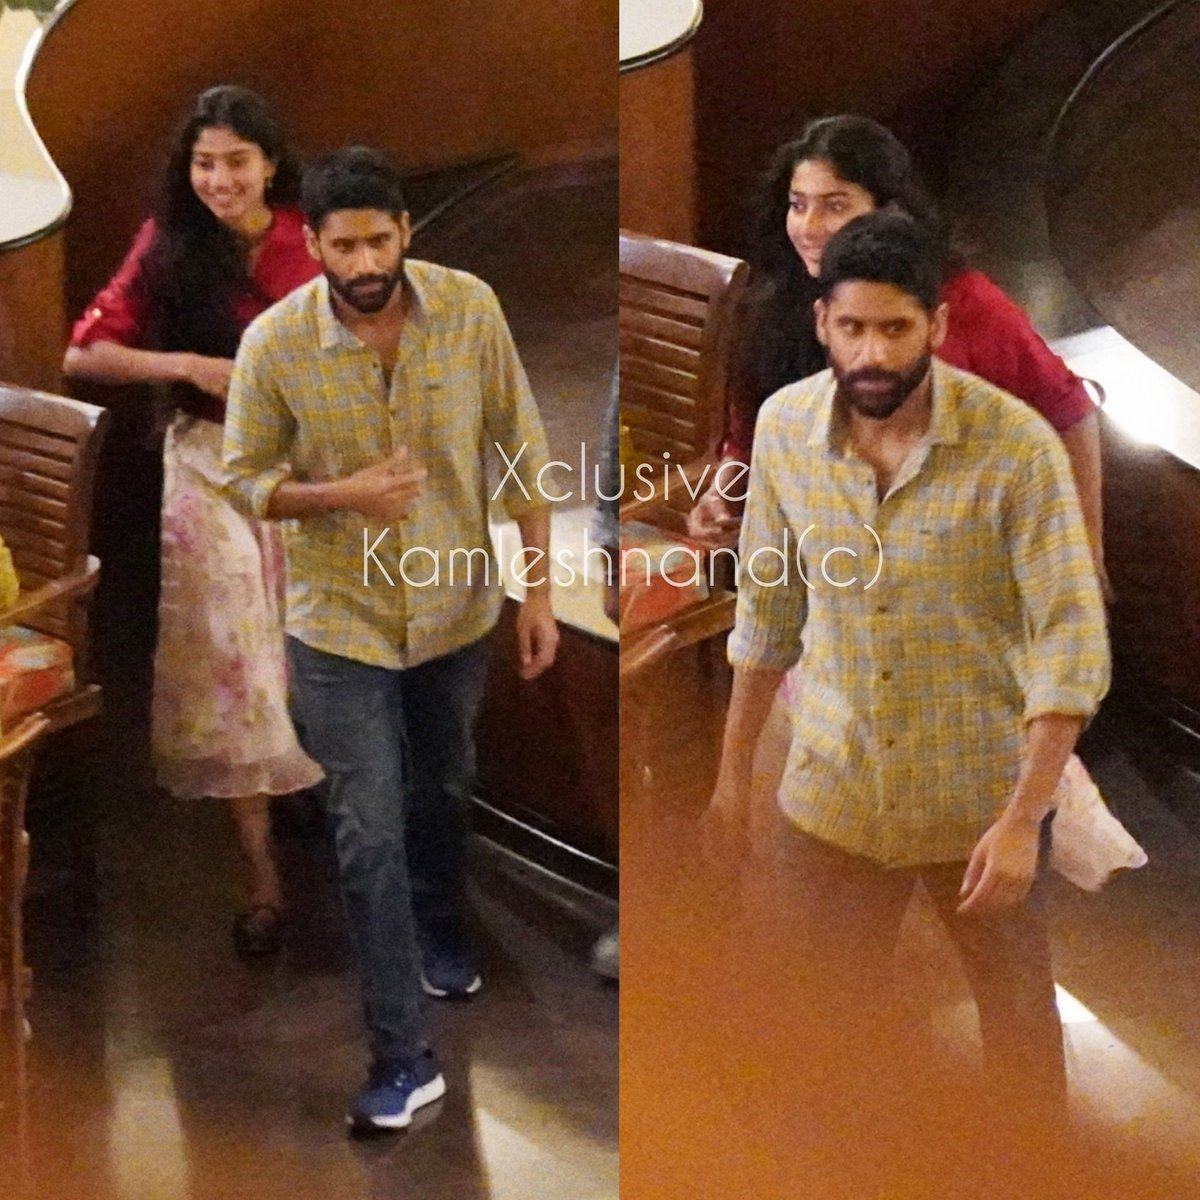 Xclusive  Tollywood stars #nagachaitanya #Saipallavi spotted shooting at hotel in Hyderabad for #LoveStory @kamlesh_nand  #southcelebs pic.twitter.com/BT4lV816zk